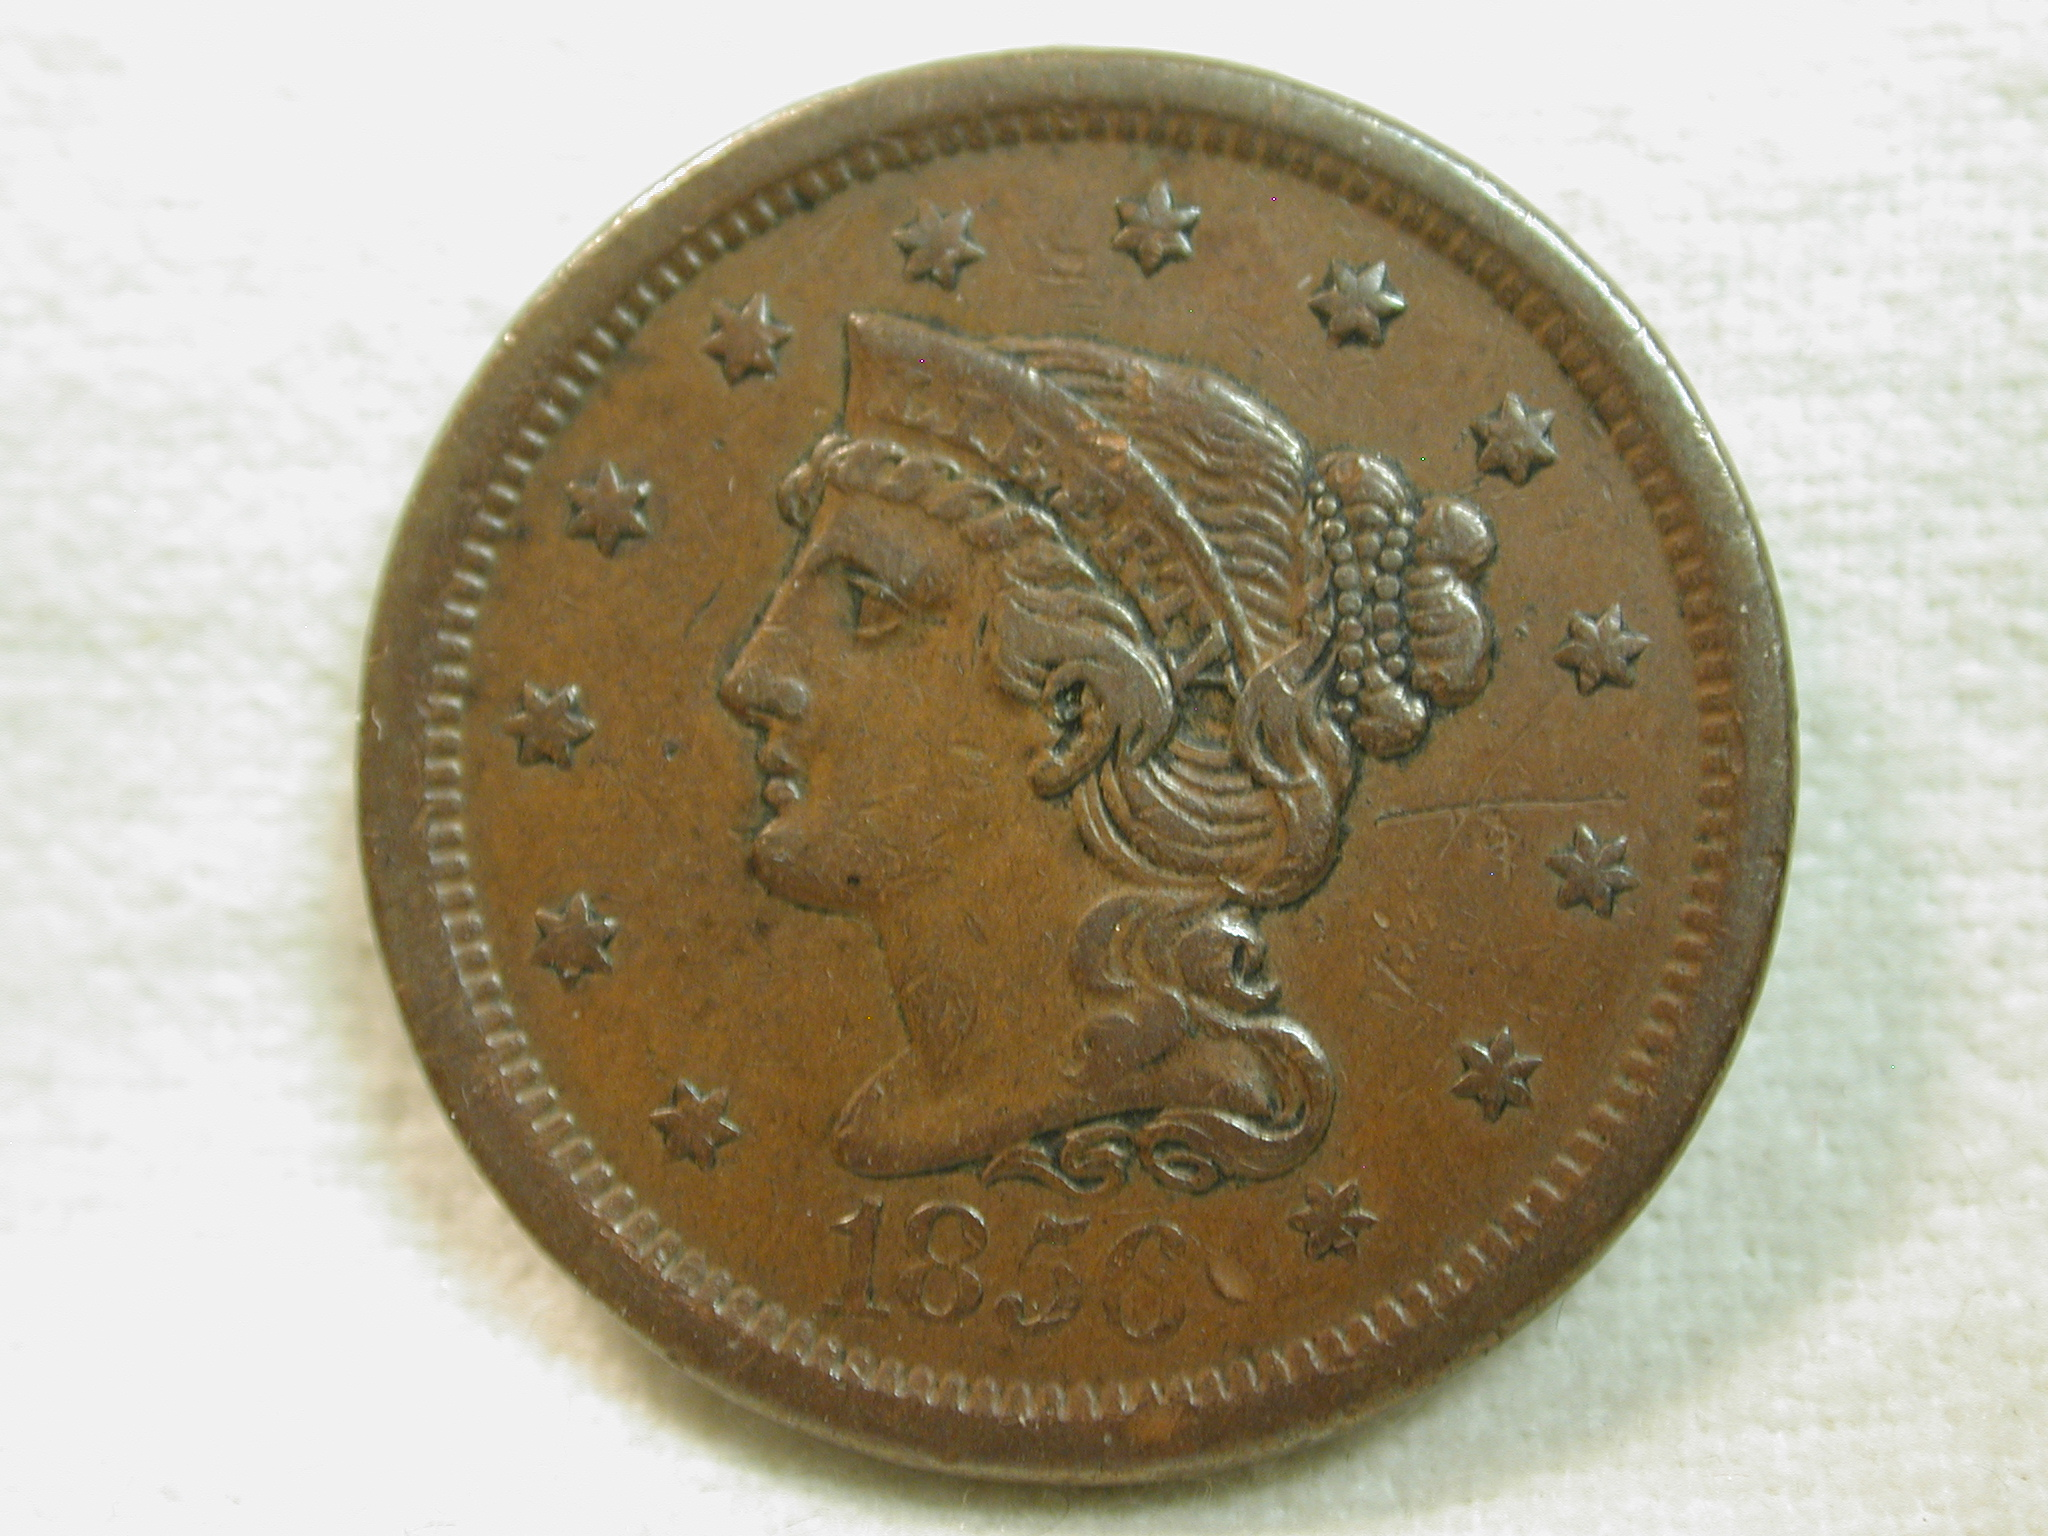 1856 U.S. Large Cent Coronet Modified Portrait-Braided Hair Extremely Fine (Irregular Surfaces)+